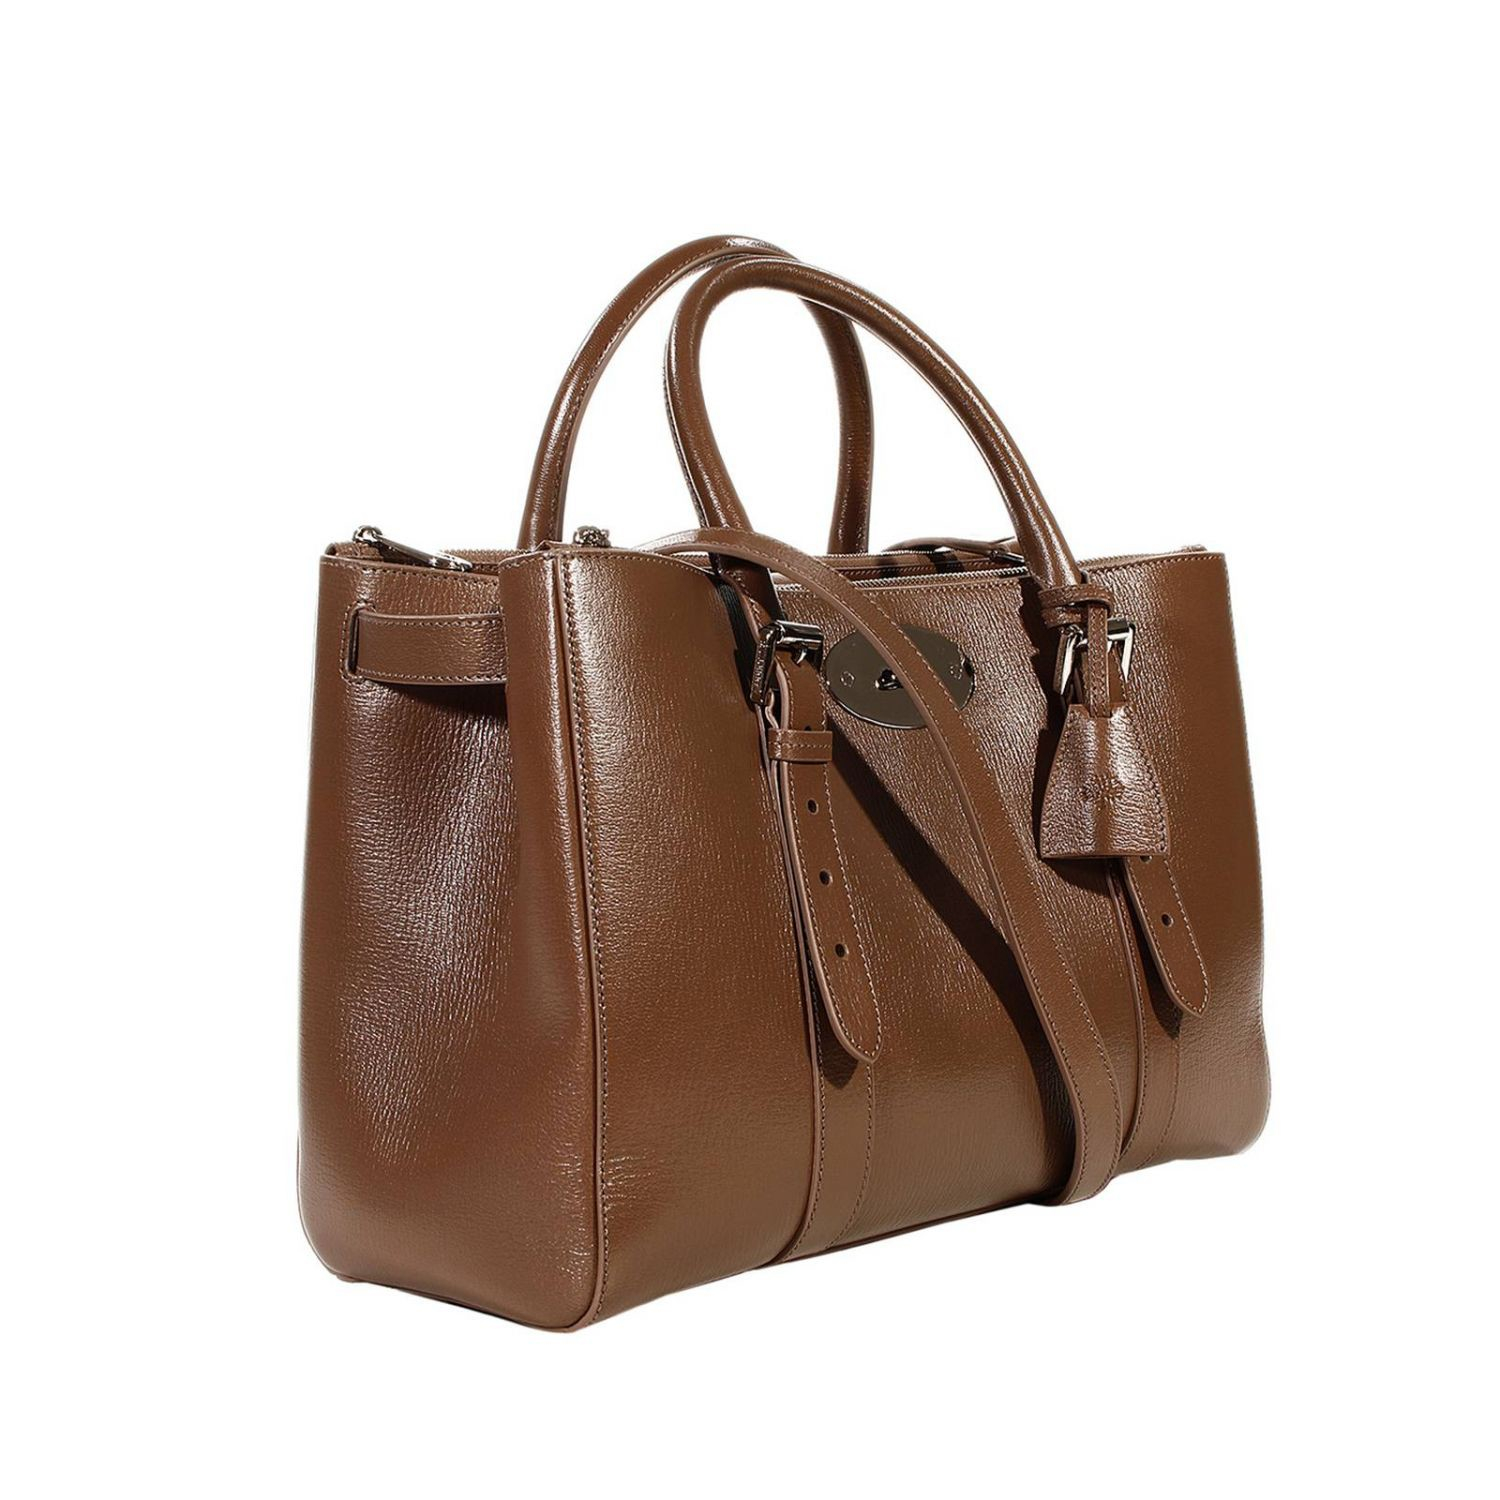 Mulberry handbag bayswater double zip classic calf in gray for The bayswater